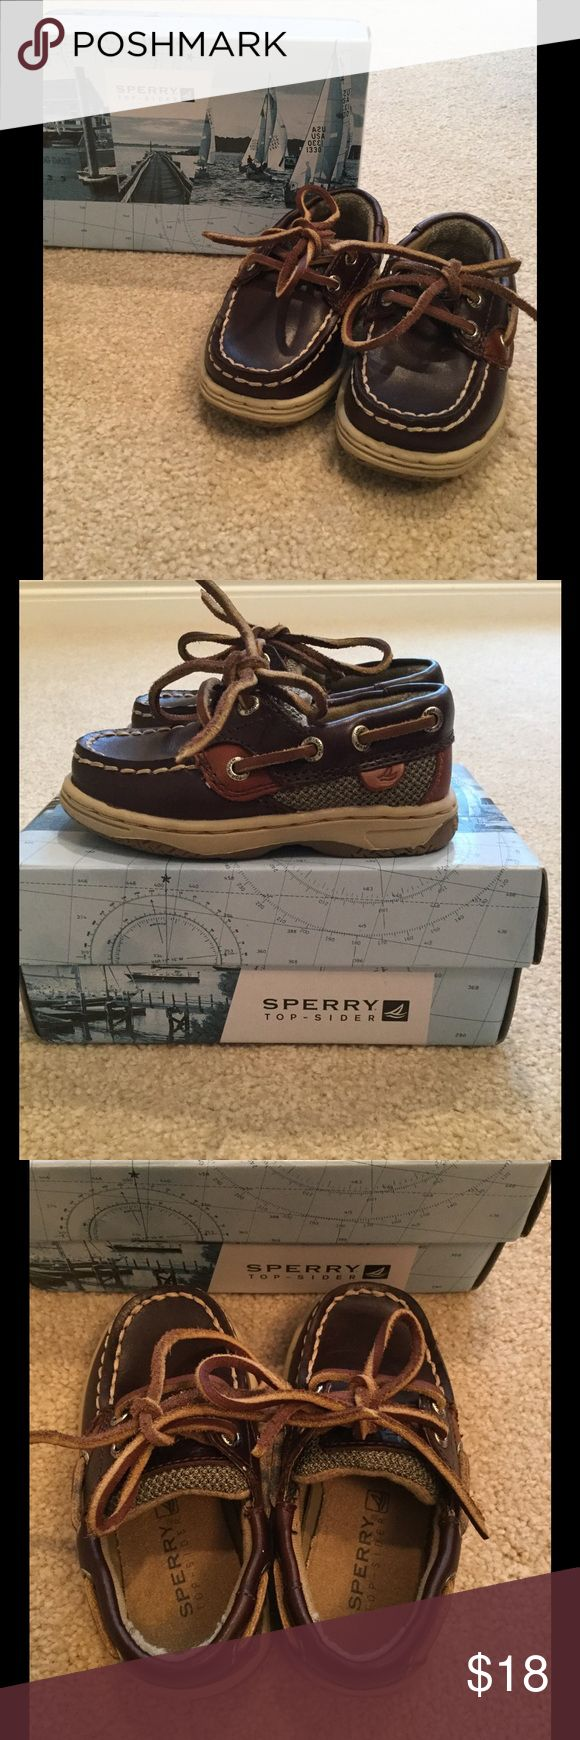 Sperry Little Boys Boat Shoes Adorable Little Boys Sperry Boat Shoes. Perfect Condition. Sperry Shoes